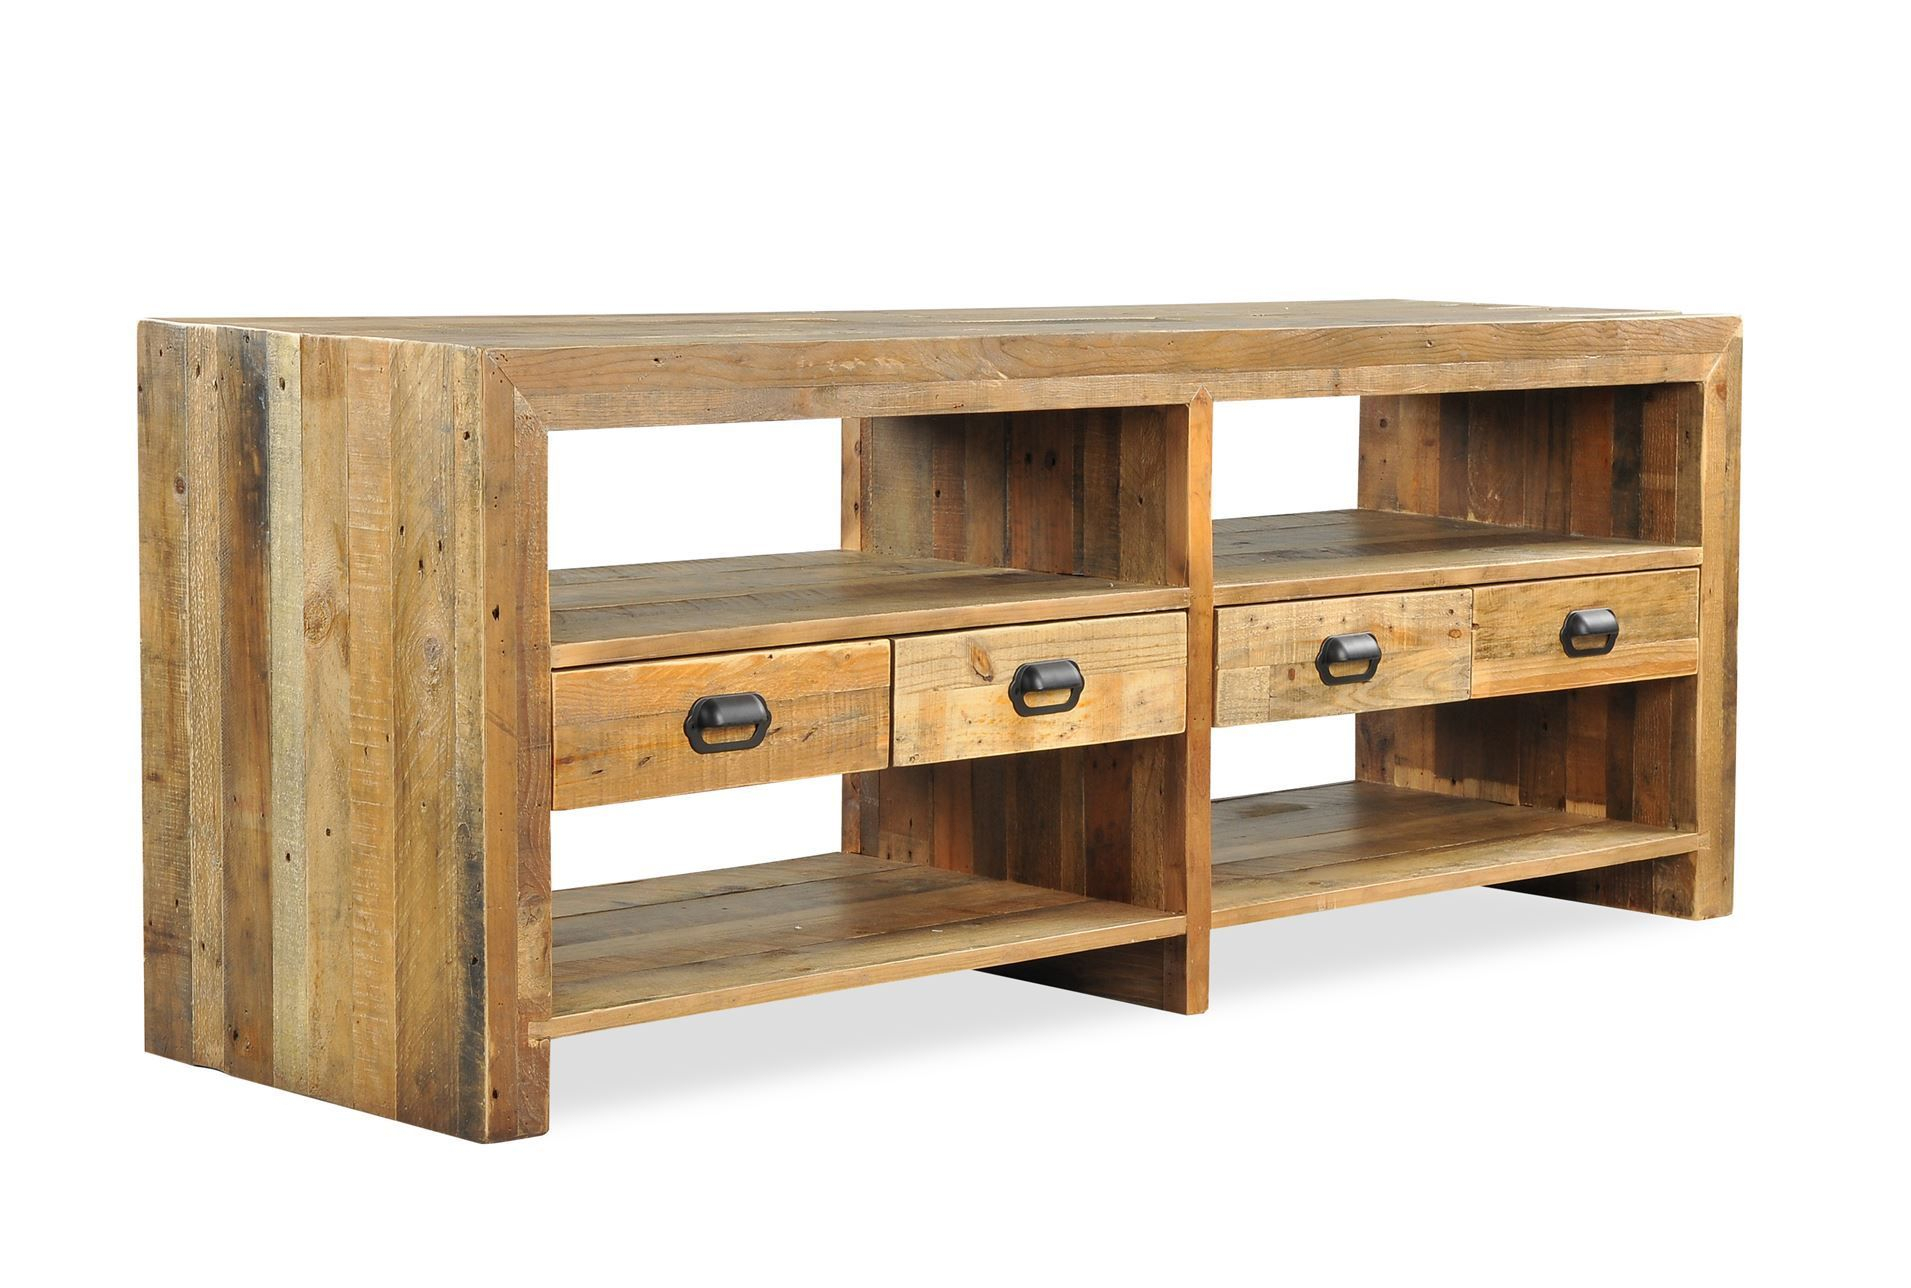 Tahoe Ii 70 Inch Tv Console - Signature Displayed At Living Spaces with Sinclair White 64 Inch Tv Stands (Image 25 of 30)